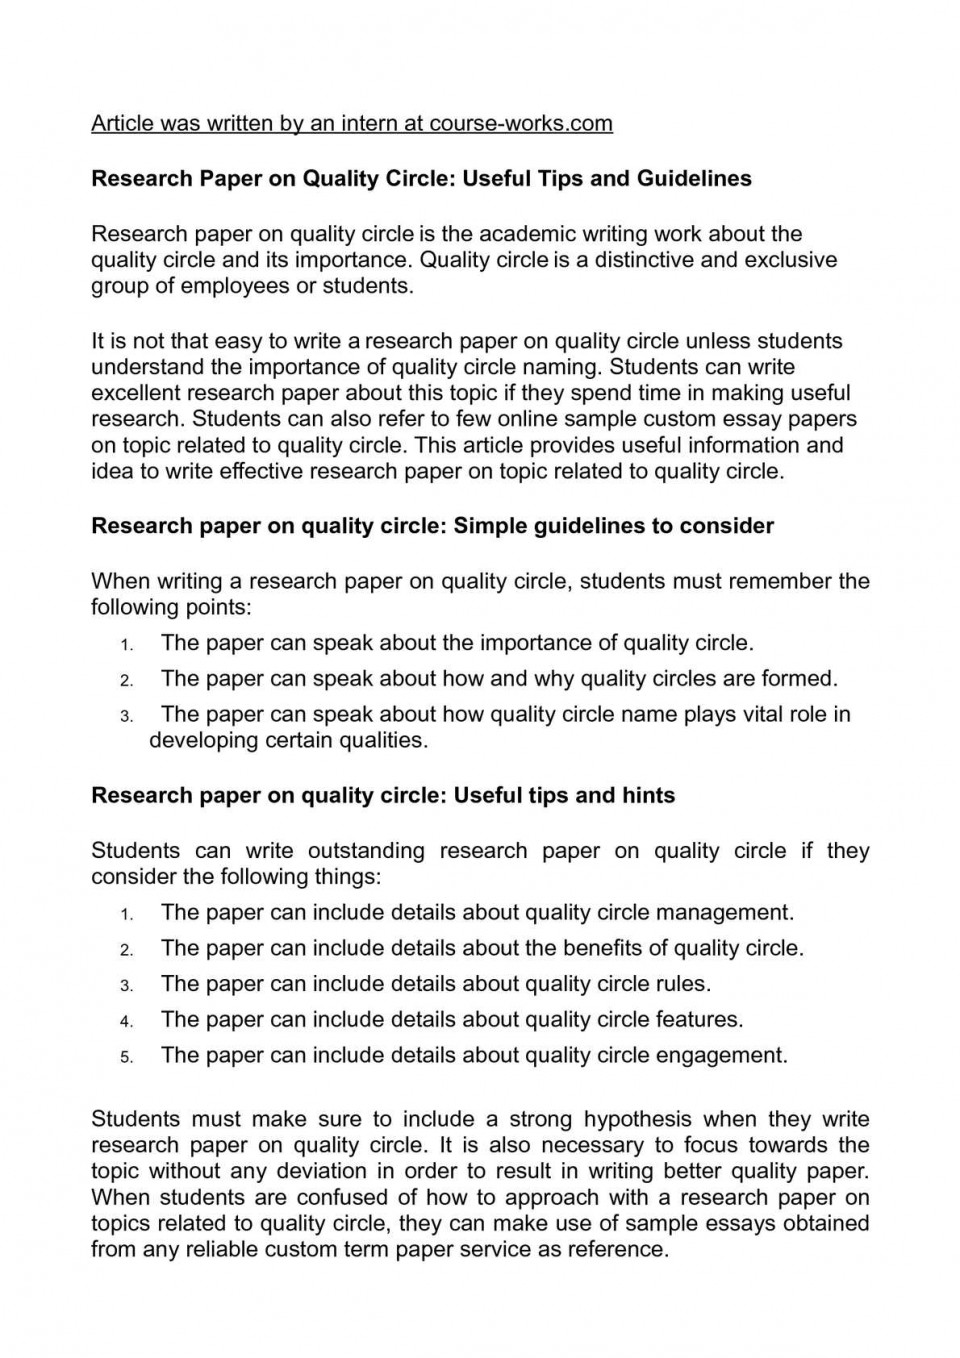 018 Tips For Writing Research Papers Paper Unforgettable A Pdf In College 960